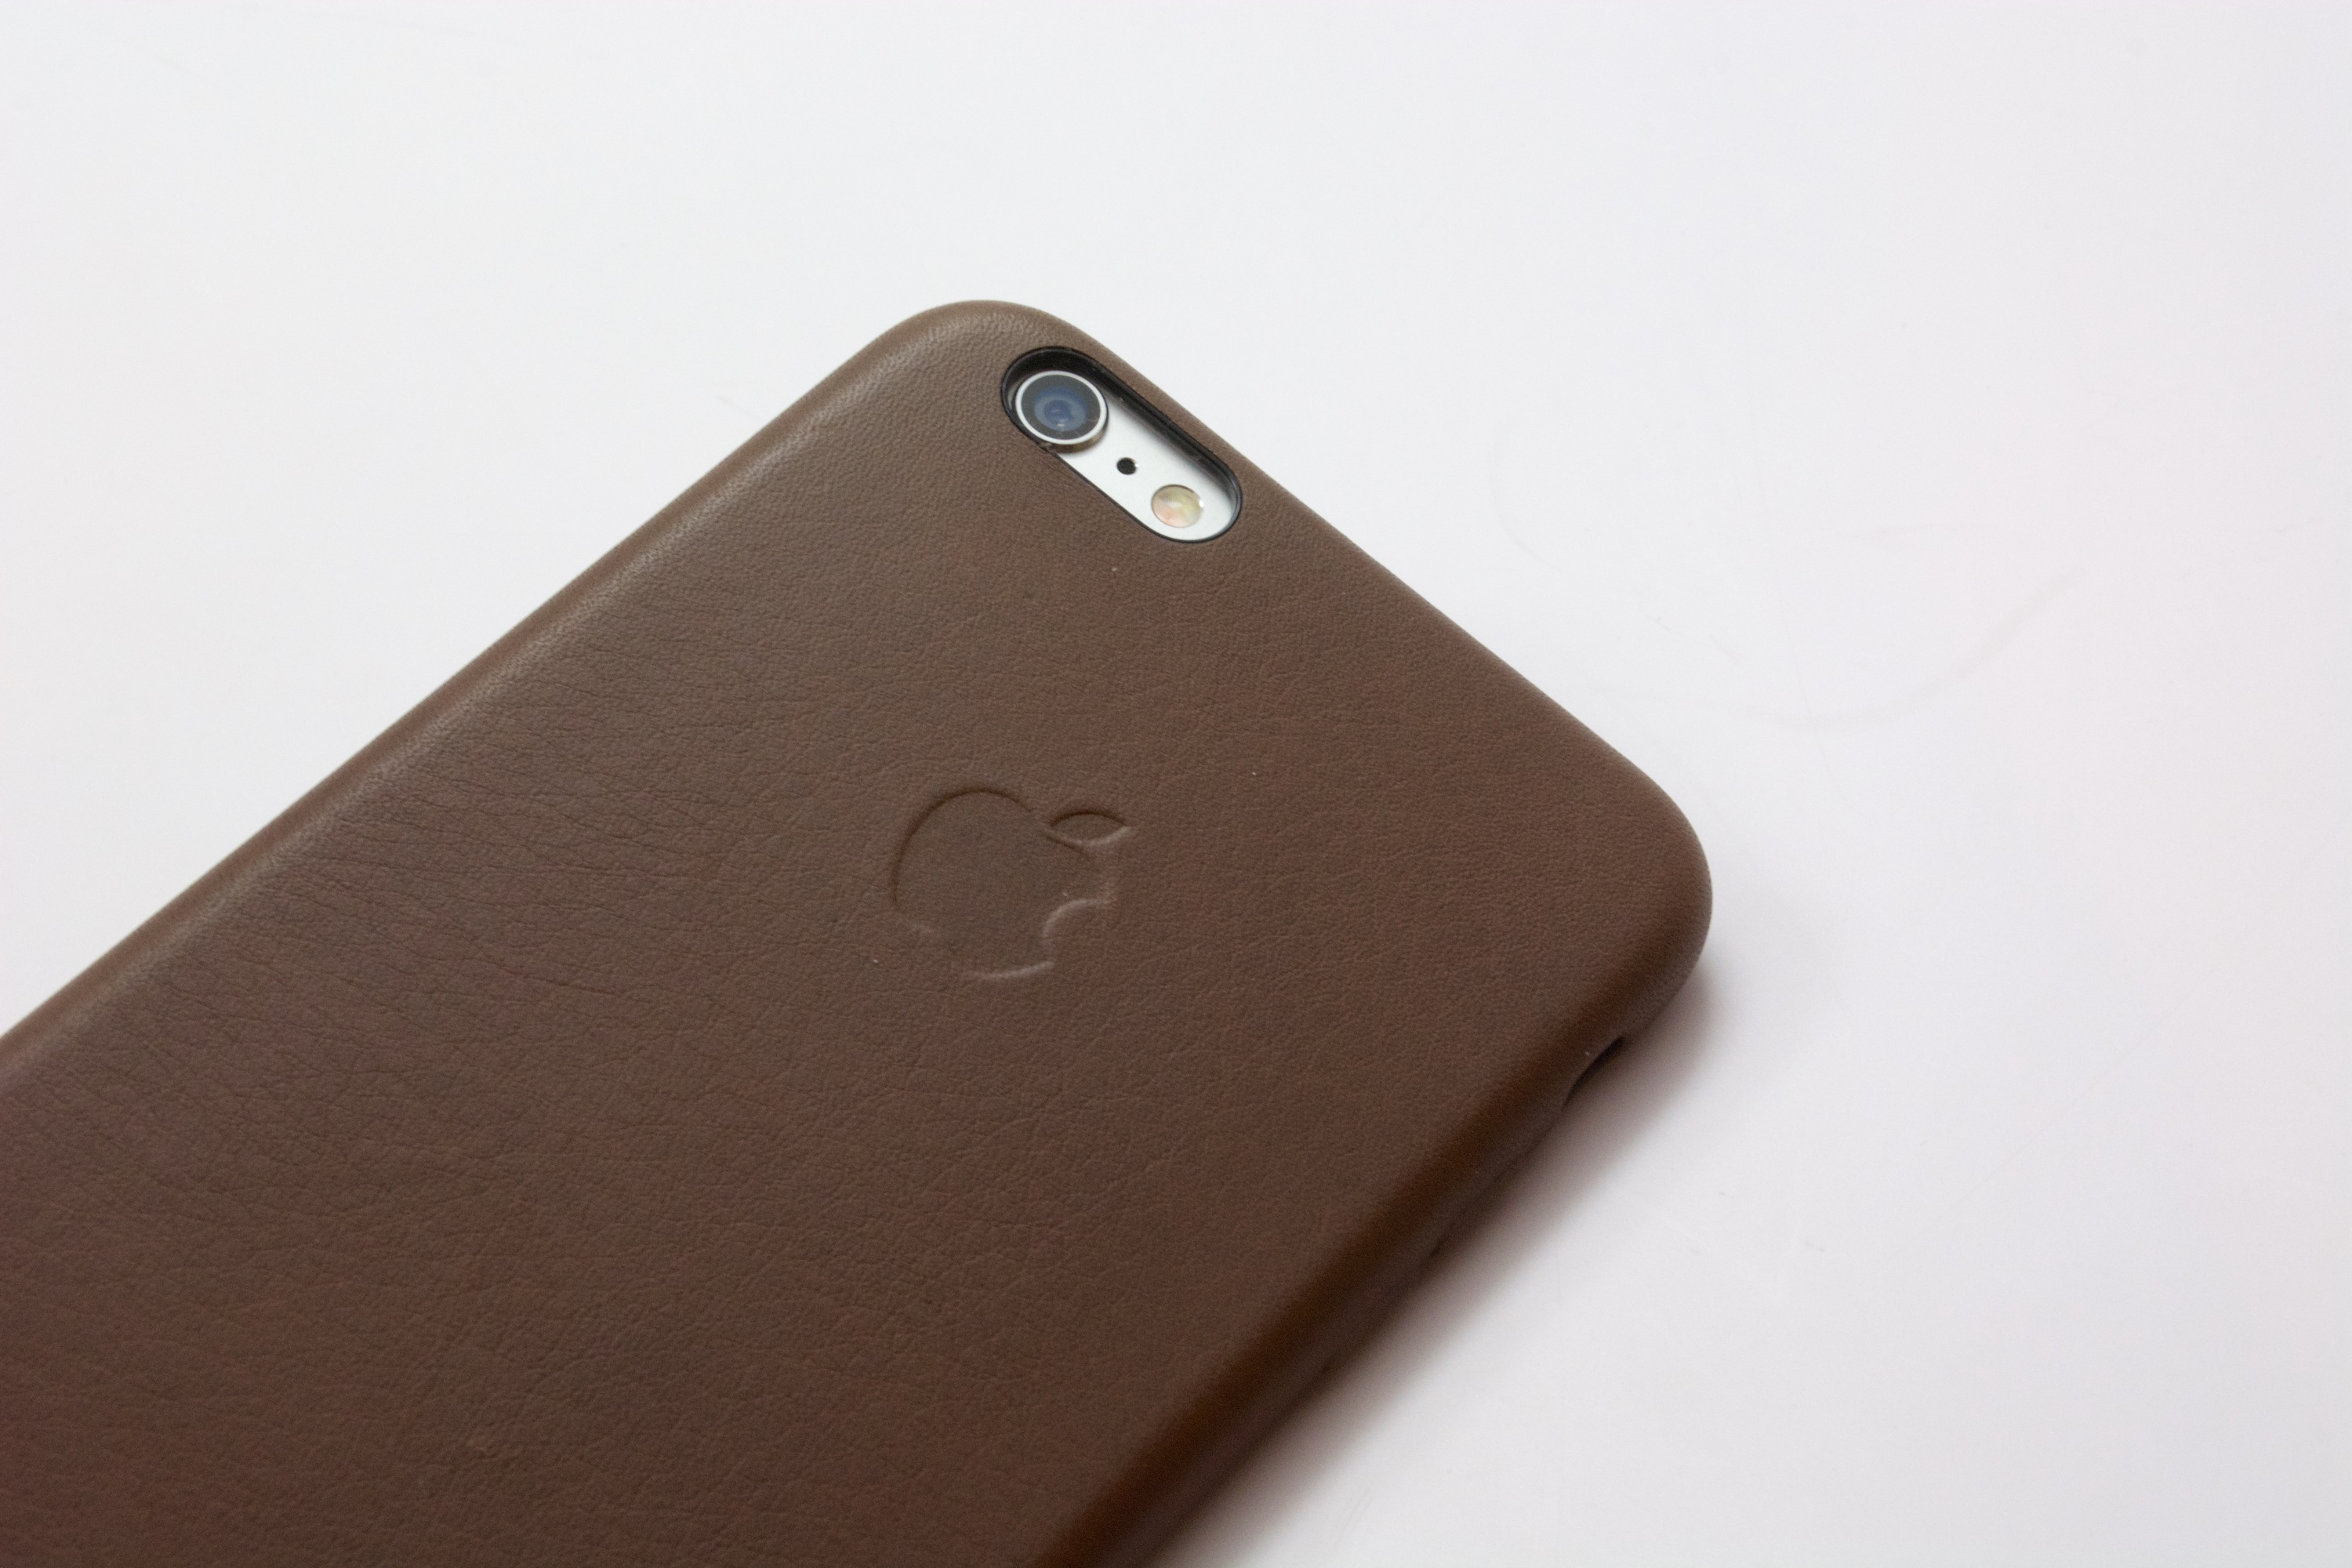 The iPhone 6 Plus leather case from Apple is a great fit.